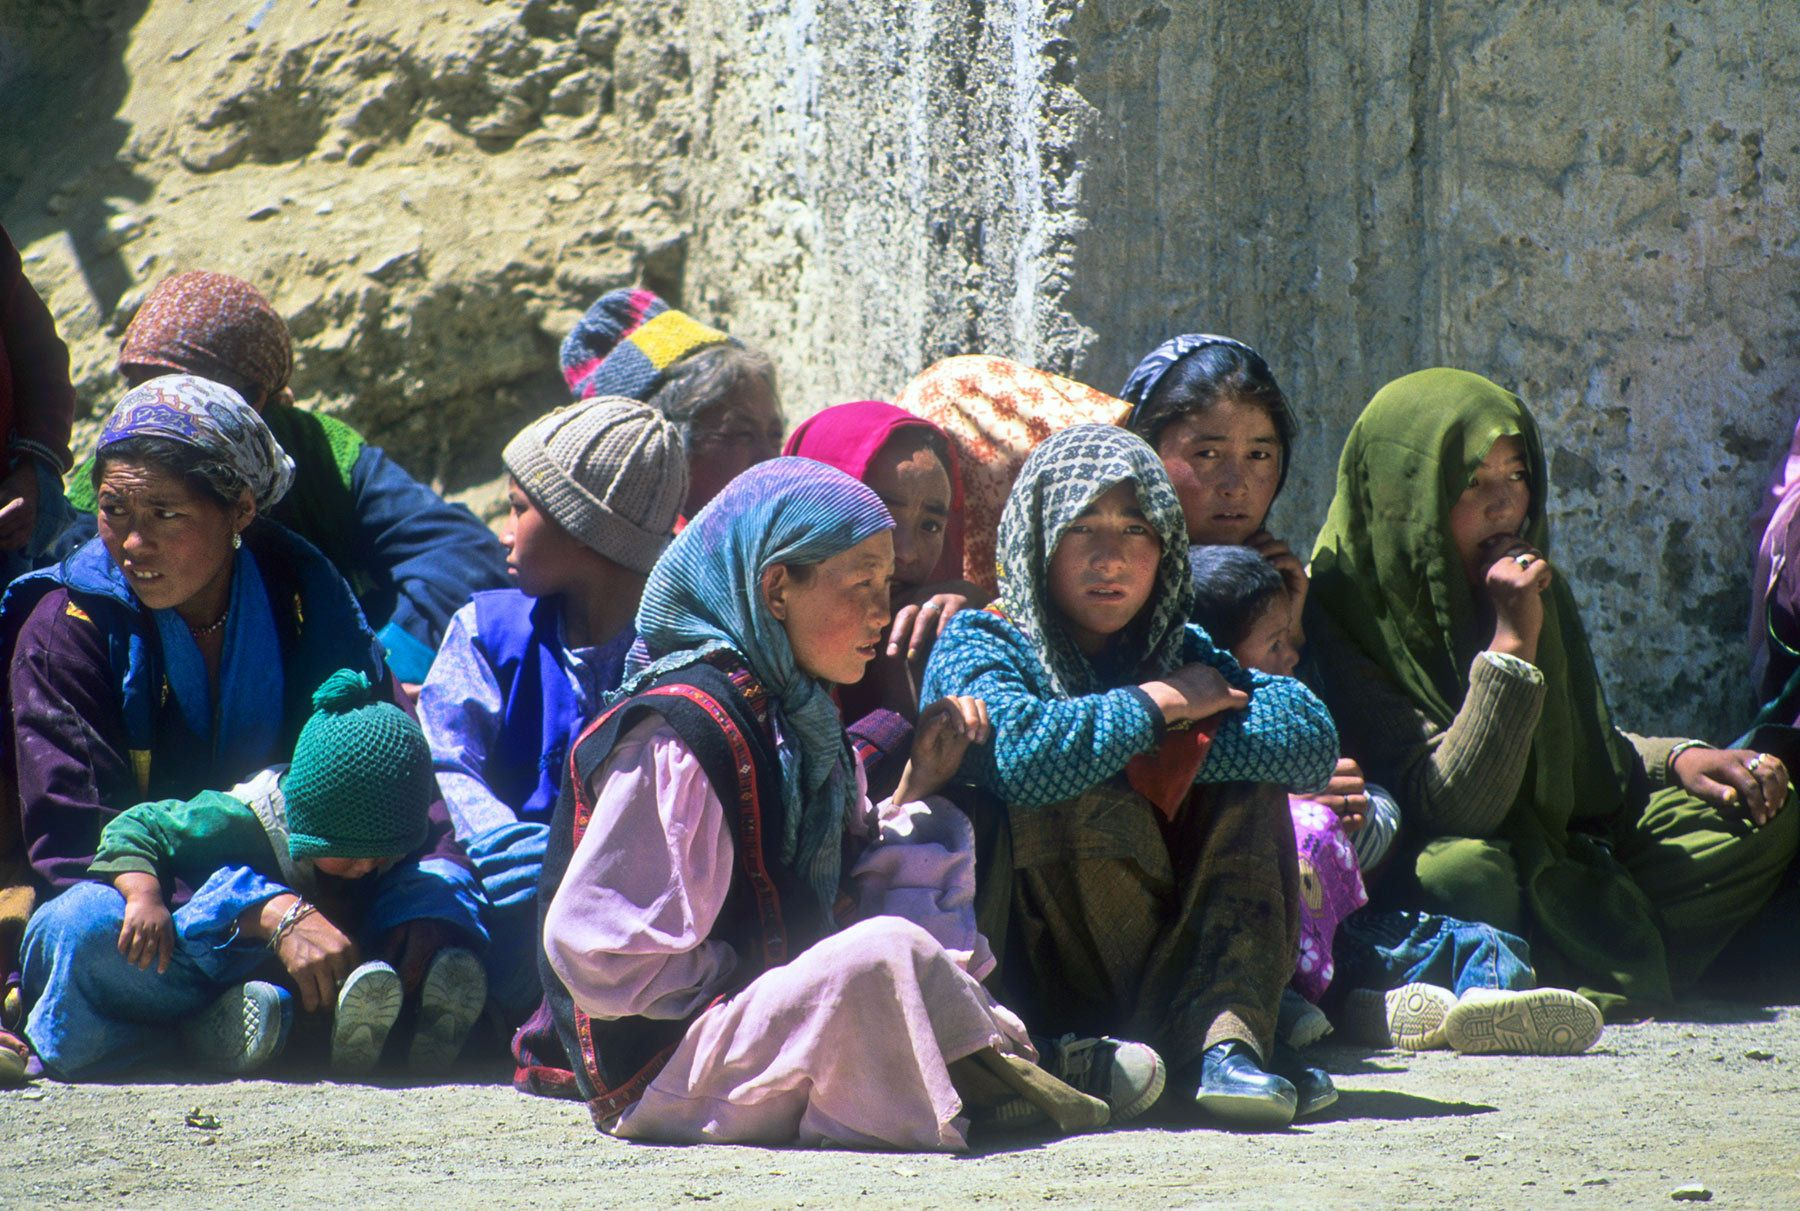 Villagers at Buddhist festival, Ladakh Region, India